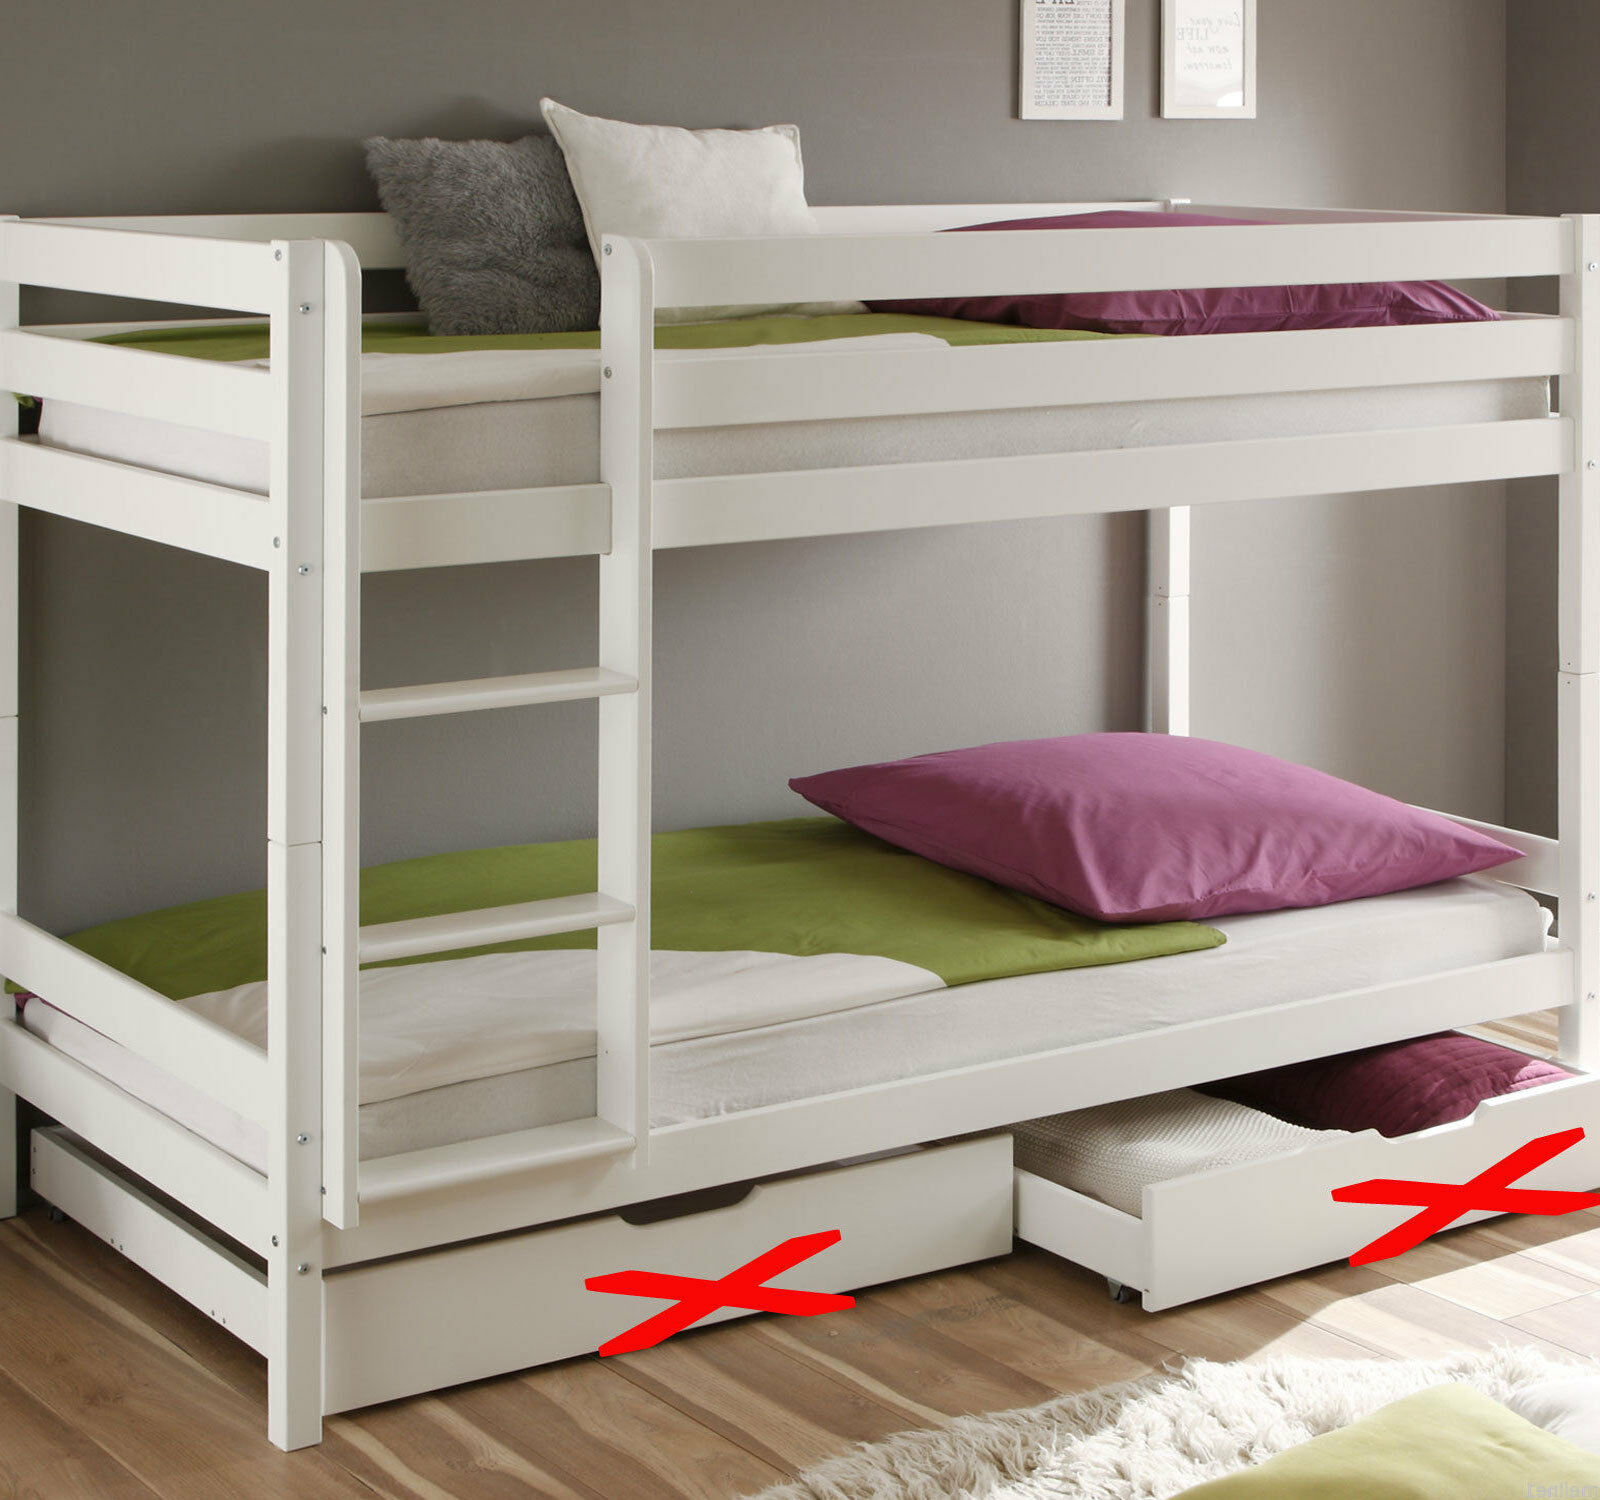 kinderbett etagenbett weiss hochbett spielbett massiv stockbett 90 x 200 cm bett eur 122 55. Black Bedroom Furniture Sets. Home Design Ideas